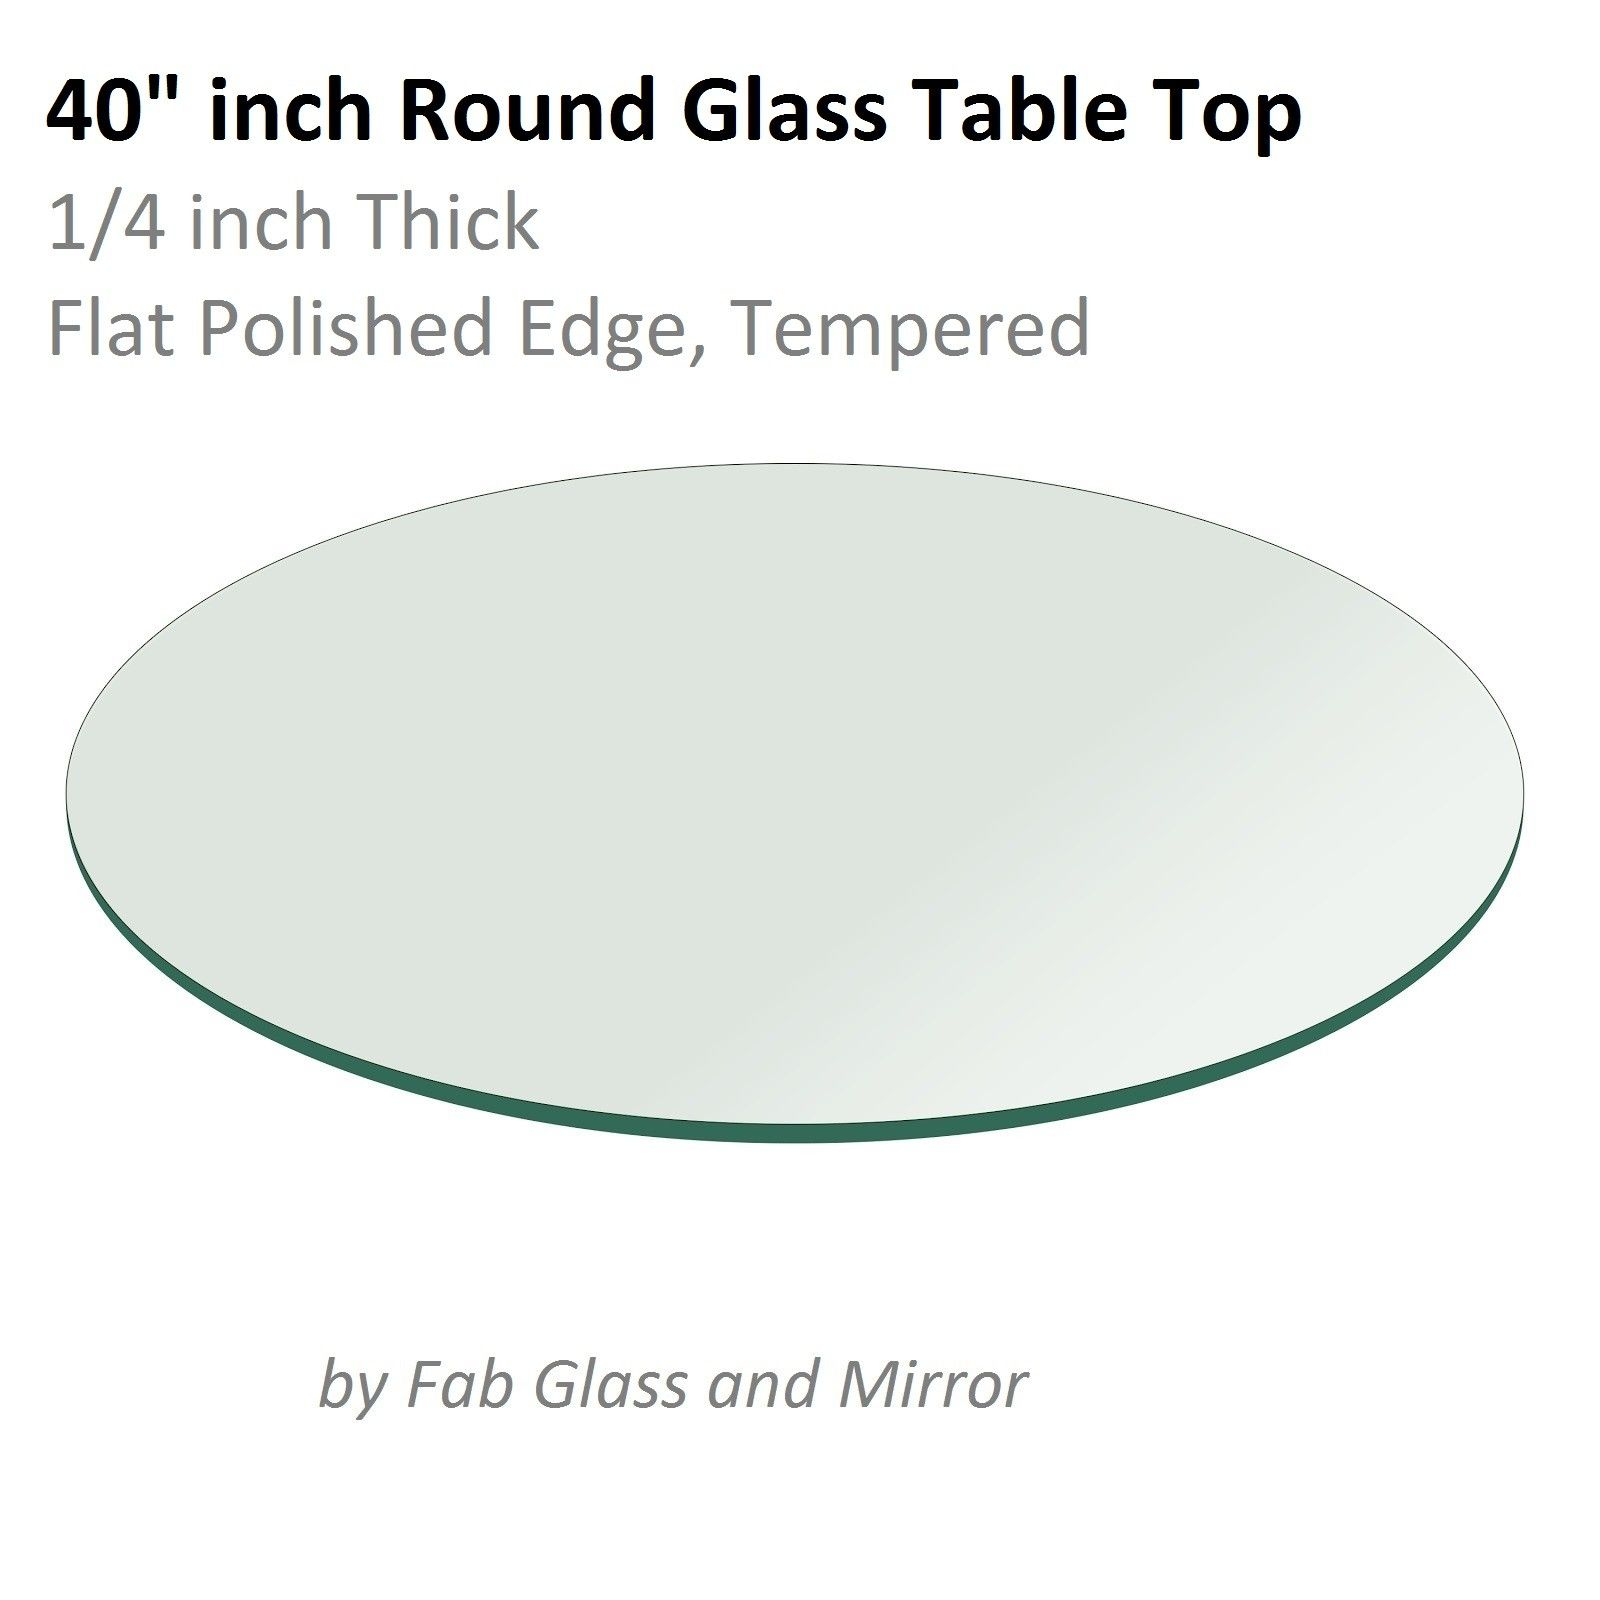 Glass Table Top 40 Inch Round Flat Polish Tempered Glass Top Table Glass Table Round Glass Table